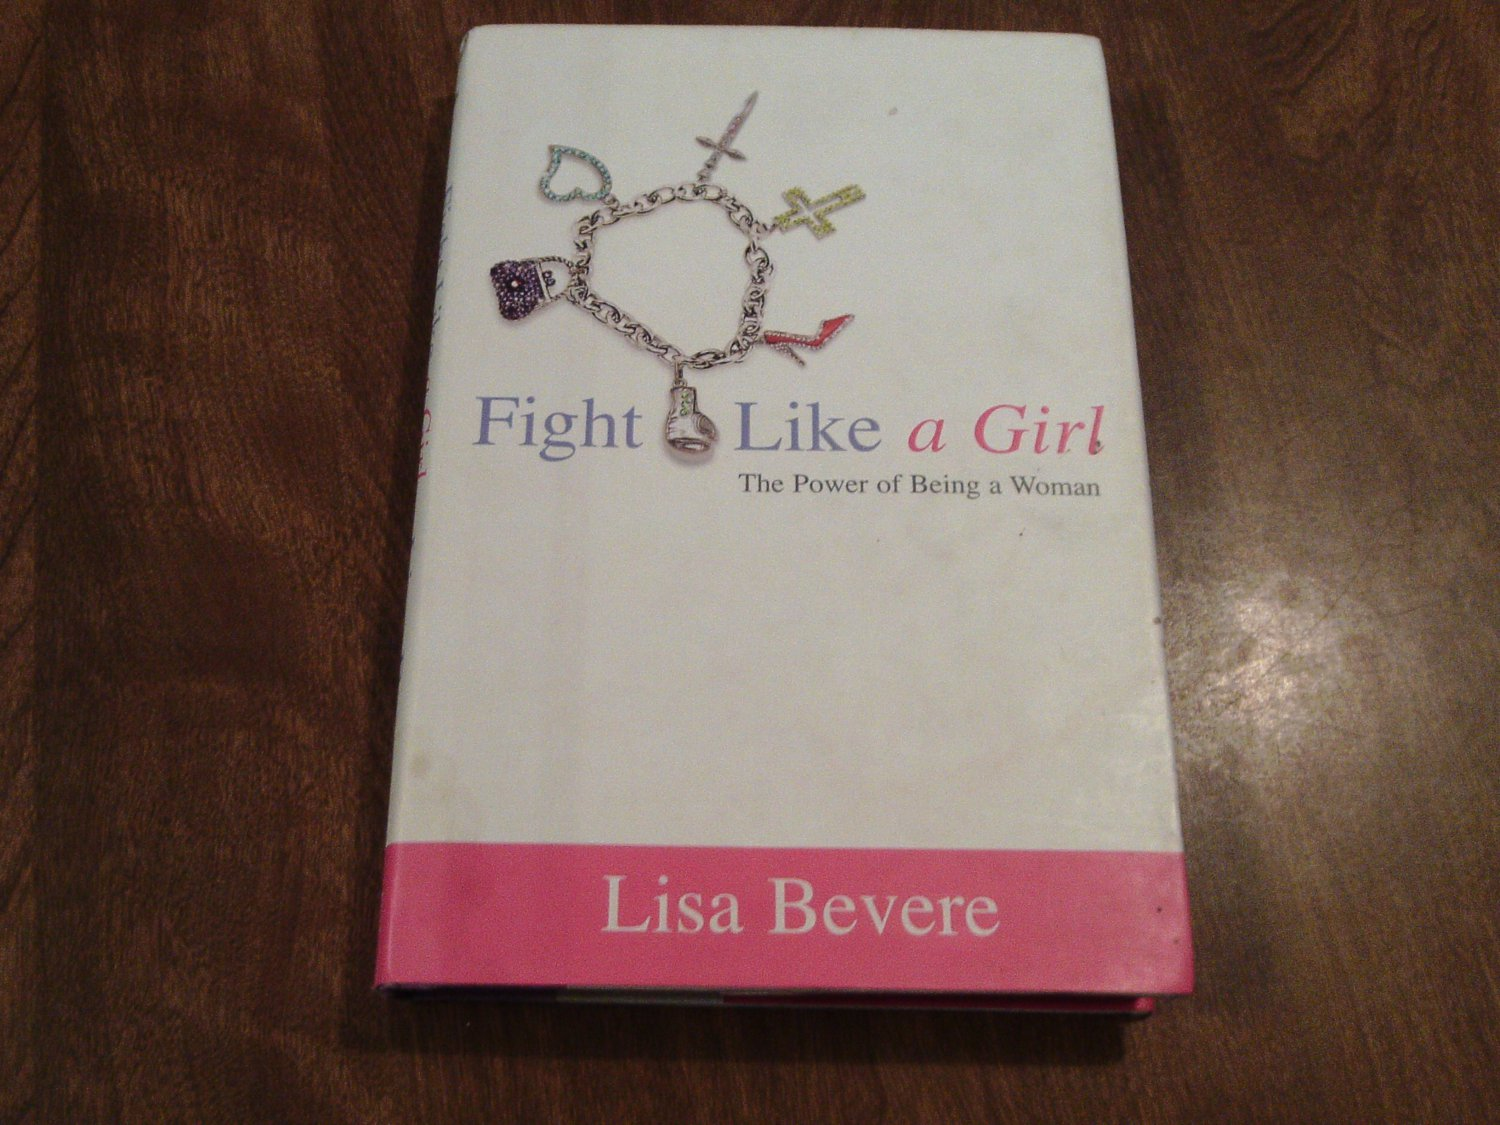 Fight Like A Girl - The Power of Being a Woman by Lisa Bevere (2006) (G2A) Christian